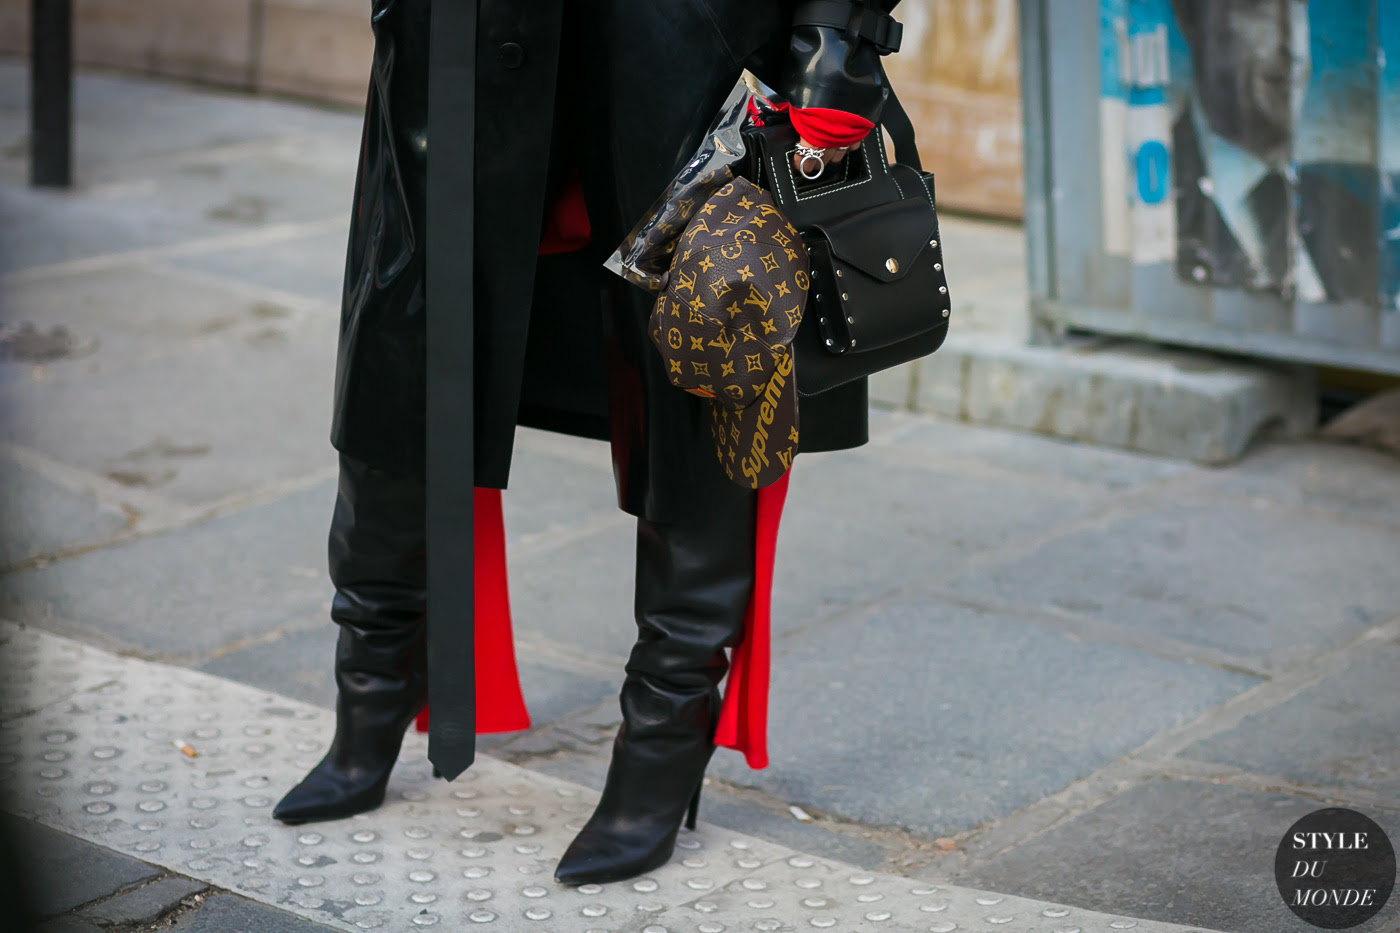 http://www.styledumonde.com/wp-content/uploads/2017/01/Louis-Vuitton-Supreme-by-STYLEDUMONDE-Street-Style-Fashion-Photography0E2A9322-700x467@2x.jpg